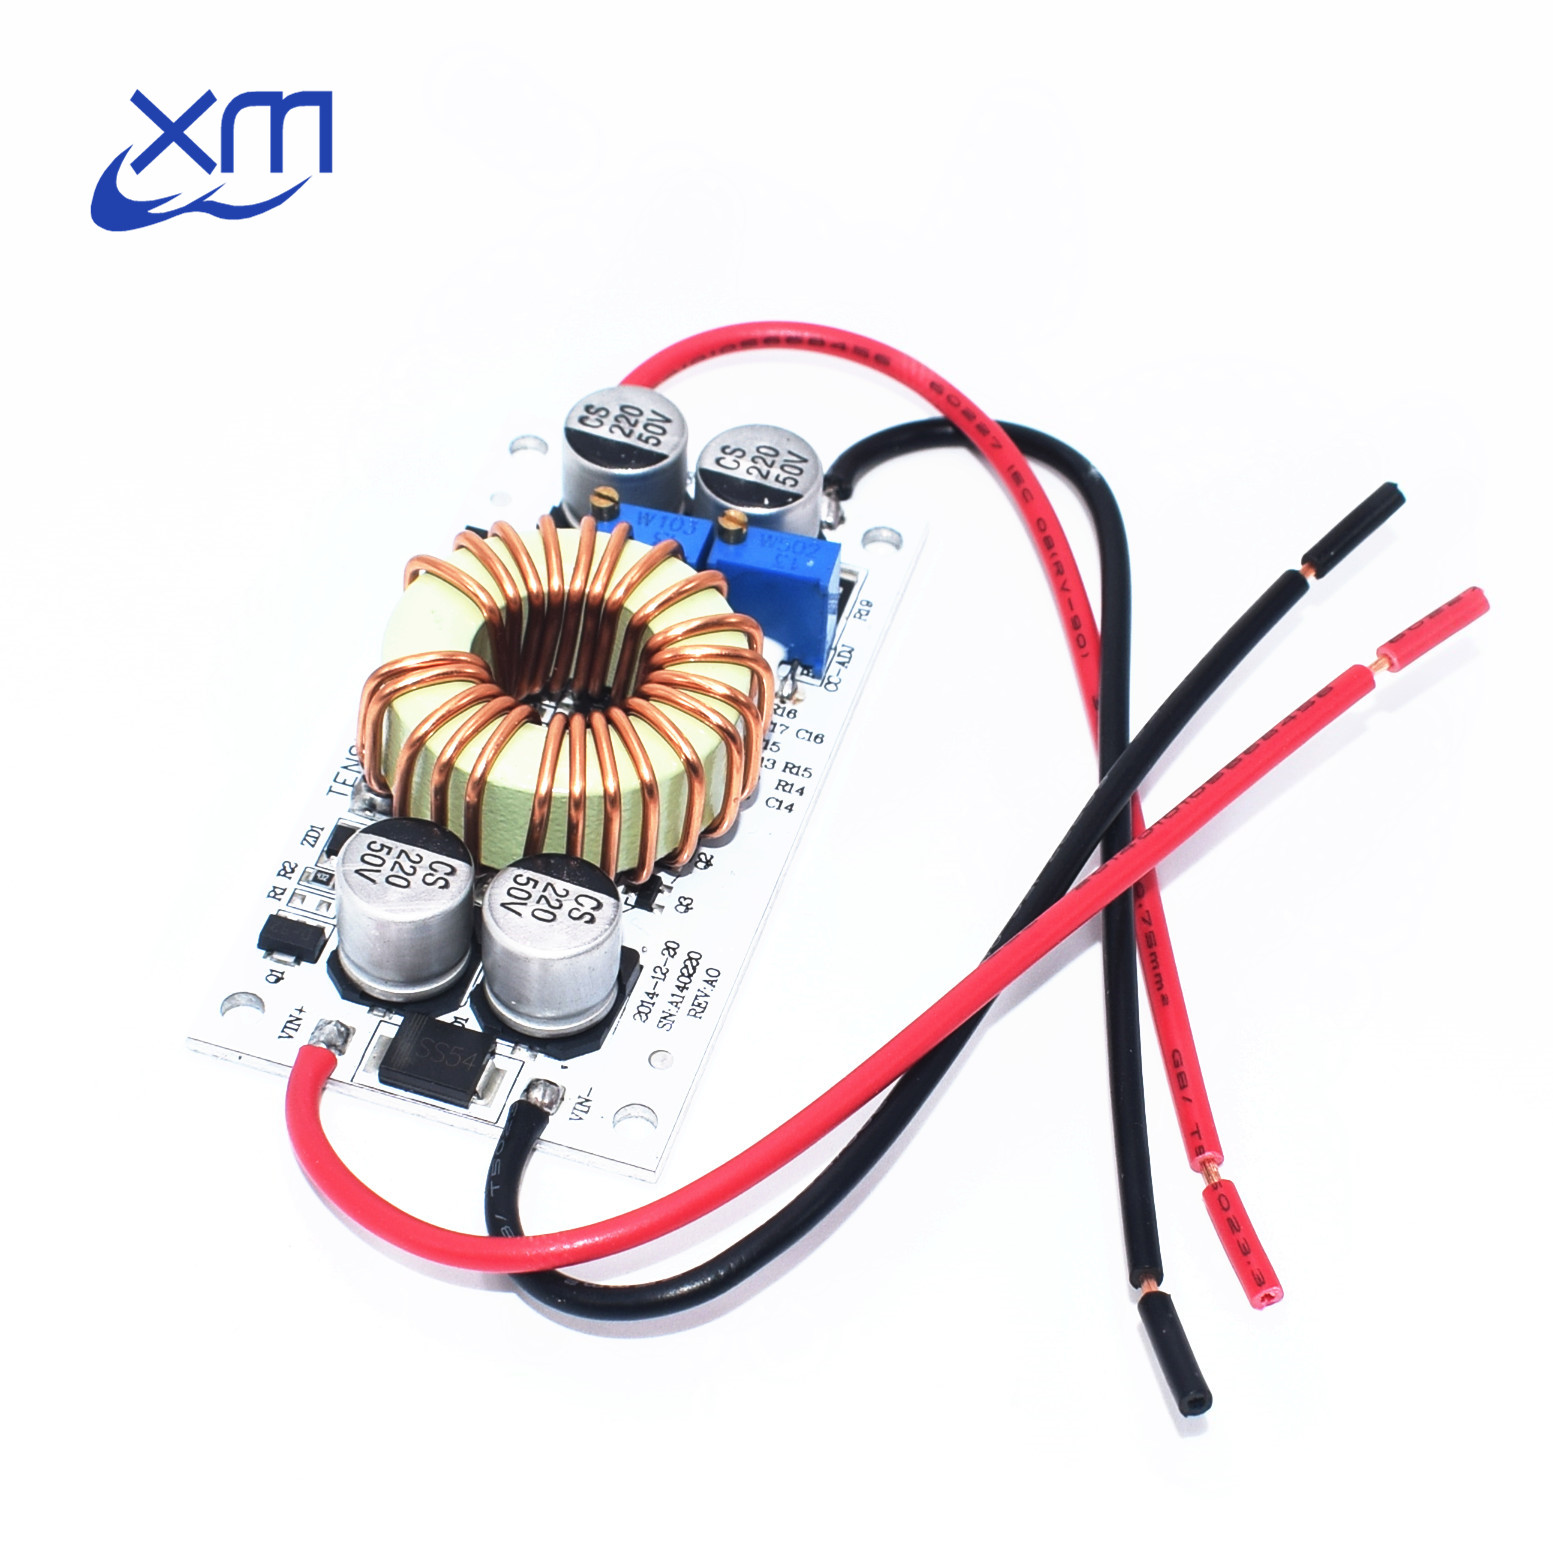 10pcs DC-DC boost converter Constant Current Mobile Power supply 10A 250W LED Driver